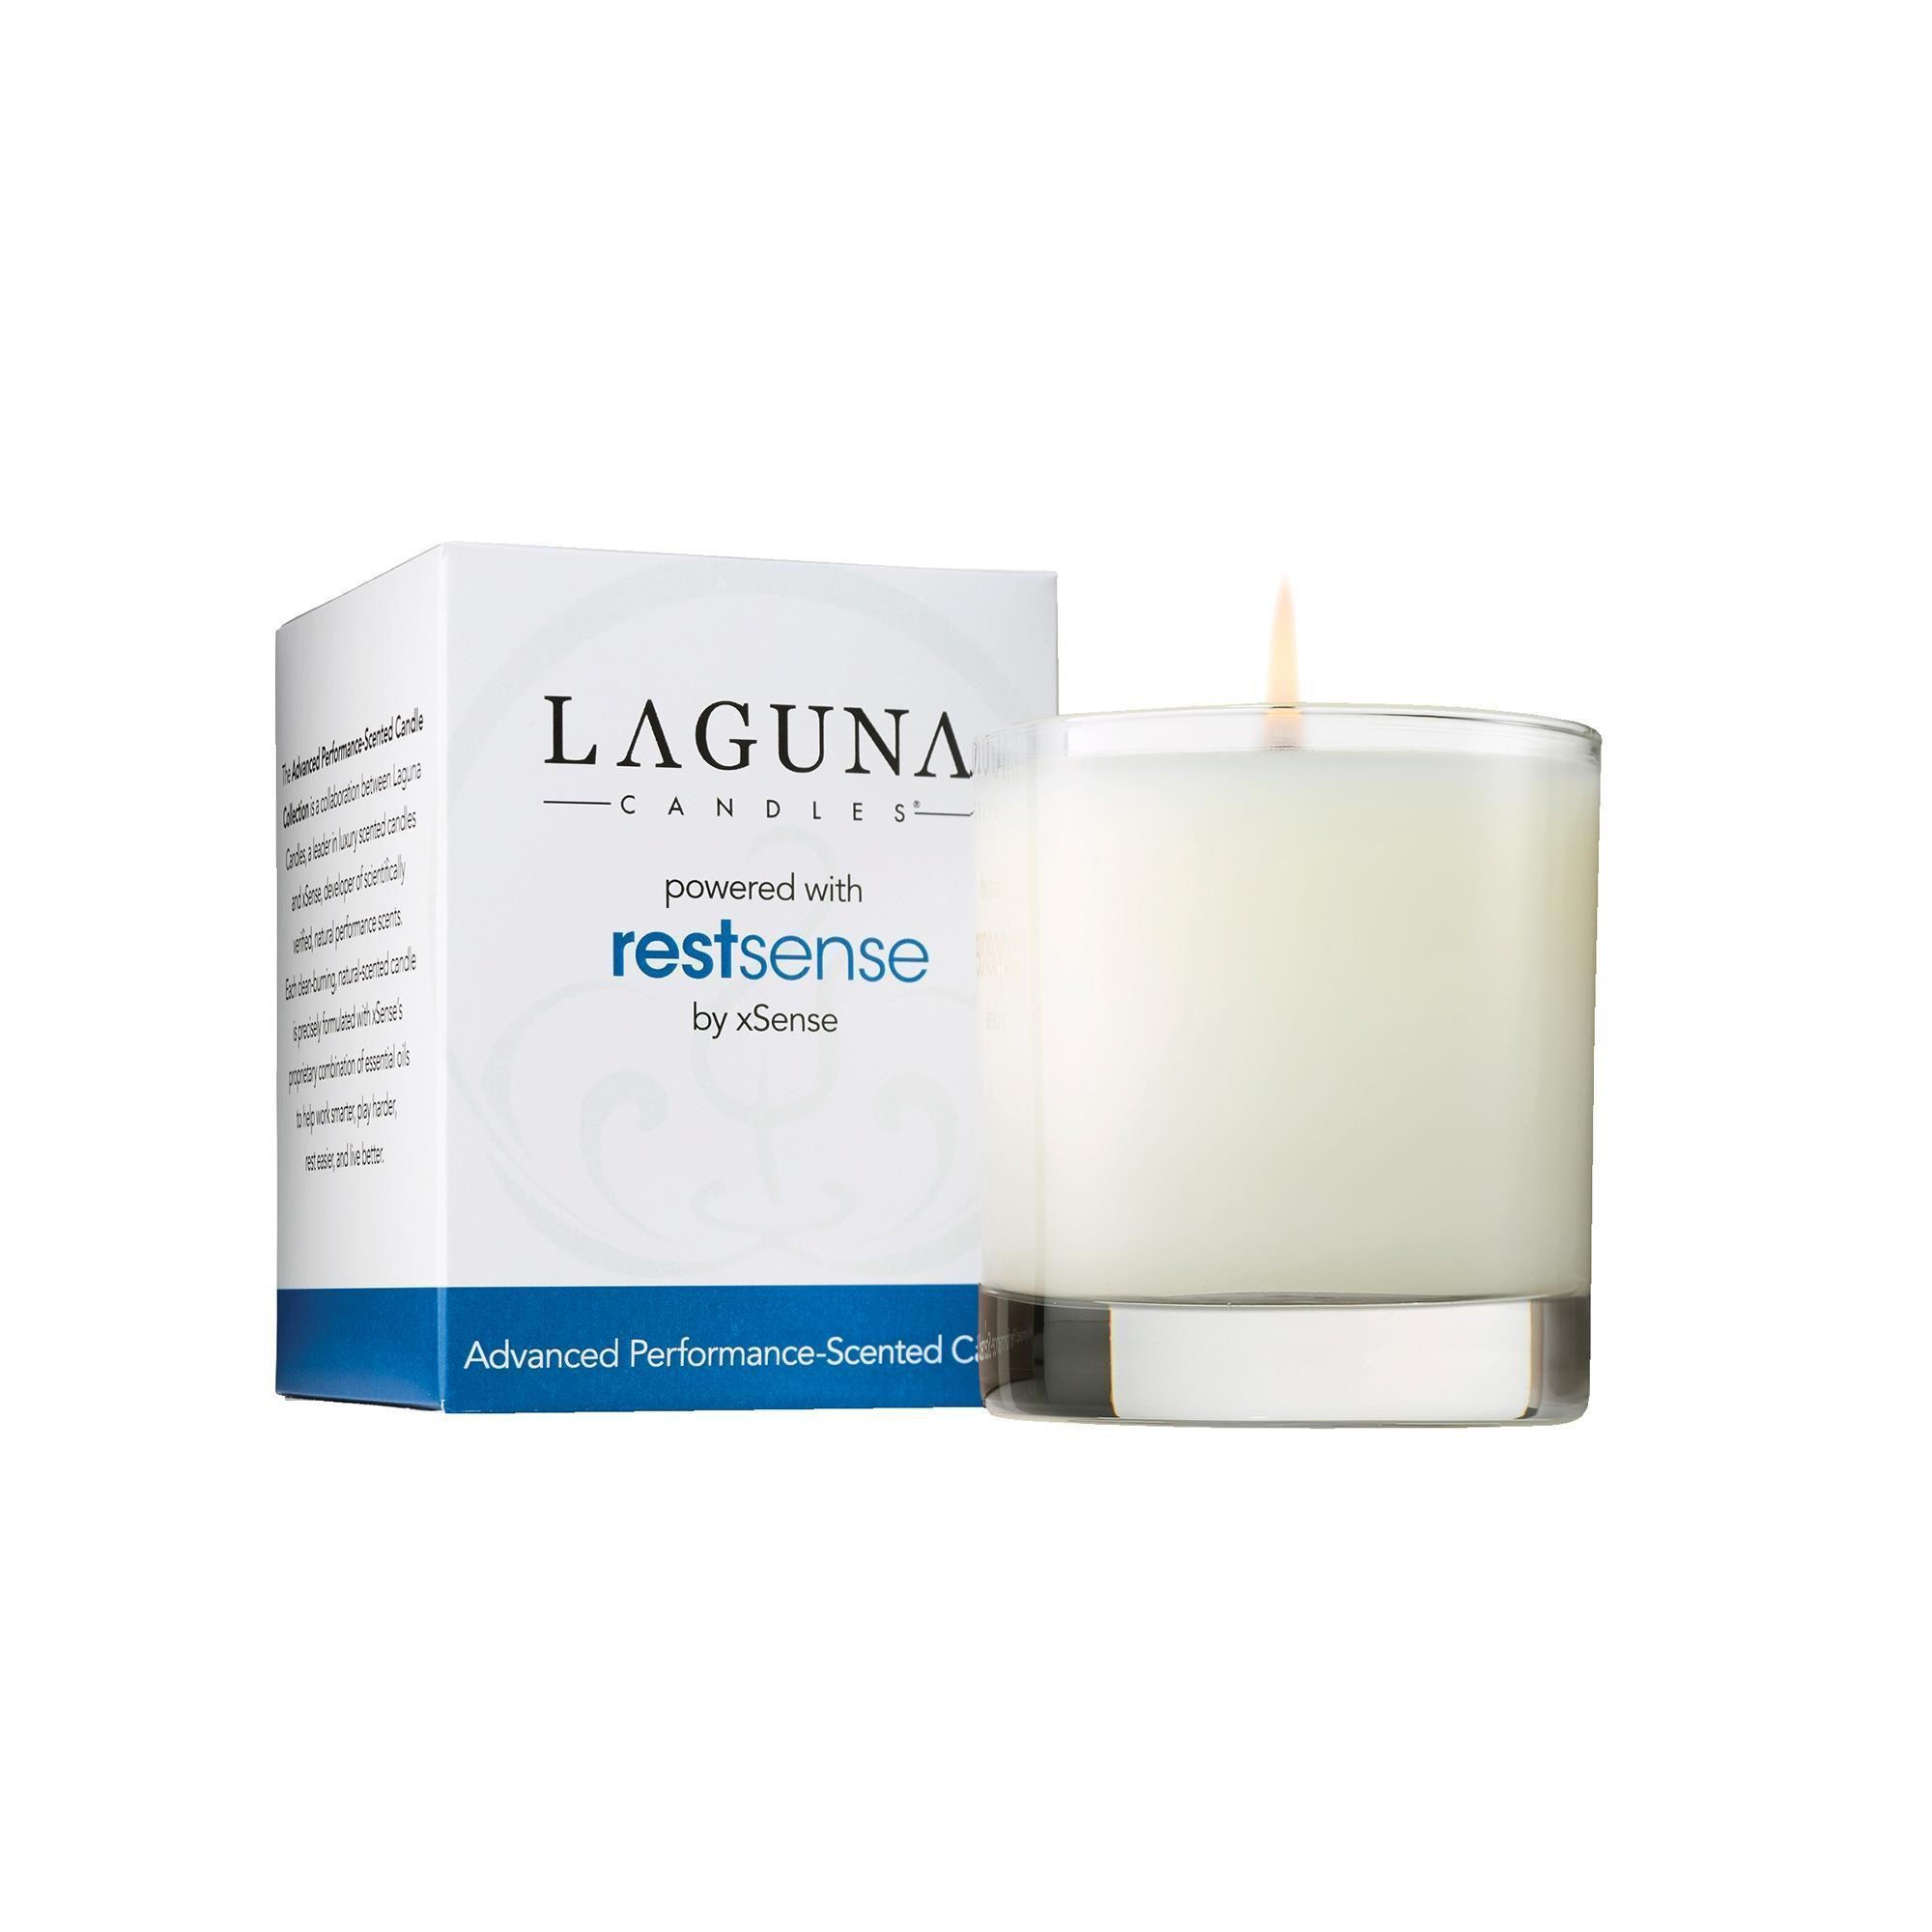 Laguna Candles Rest-Sense Performance Scented Candle ...